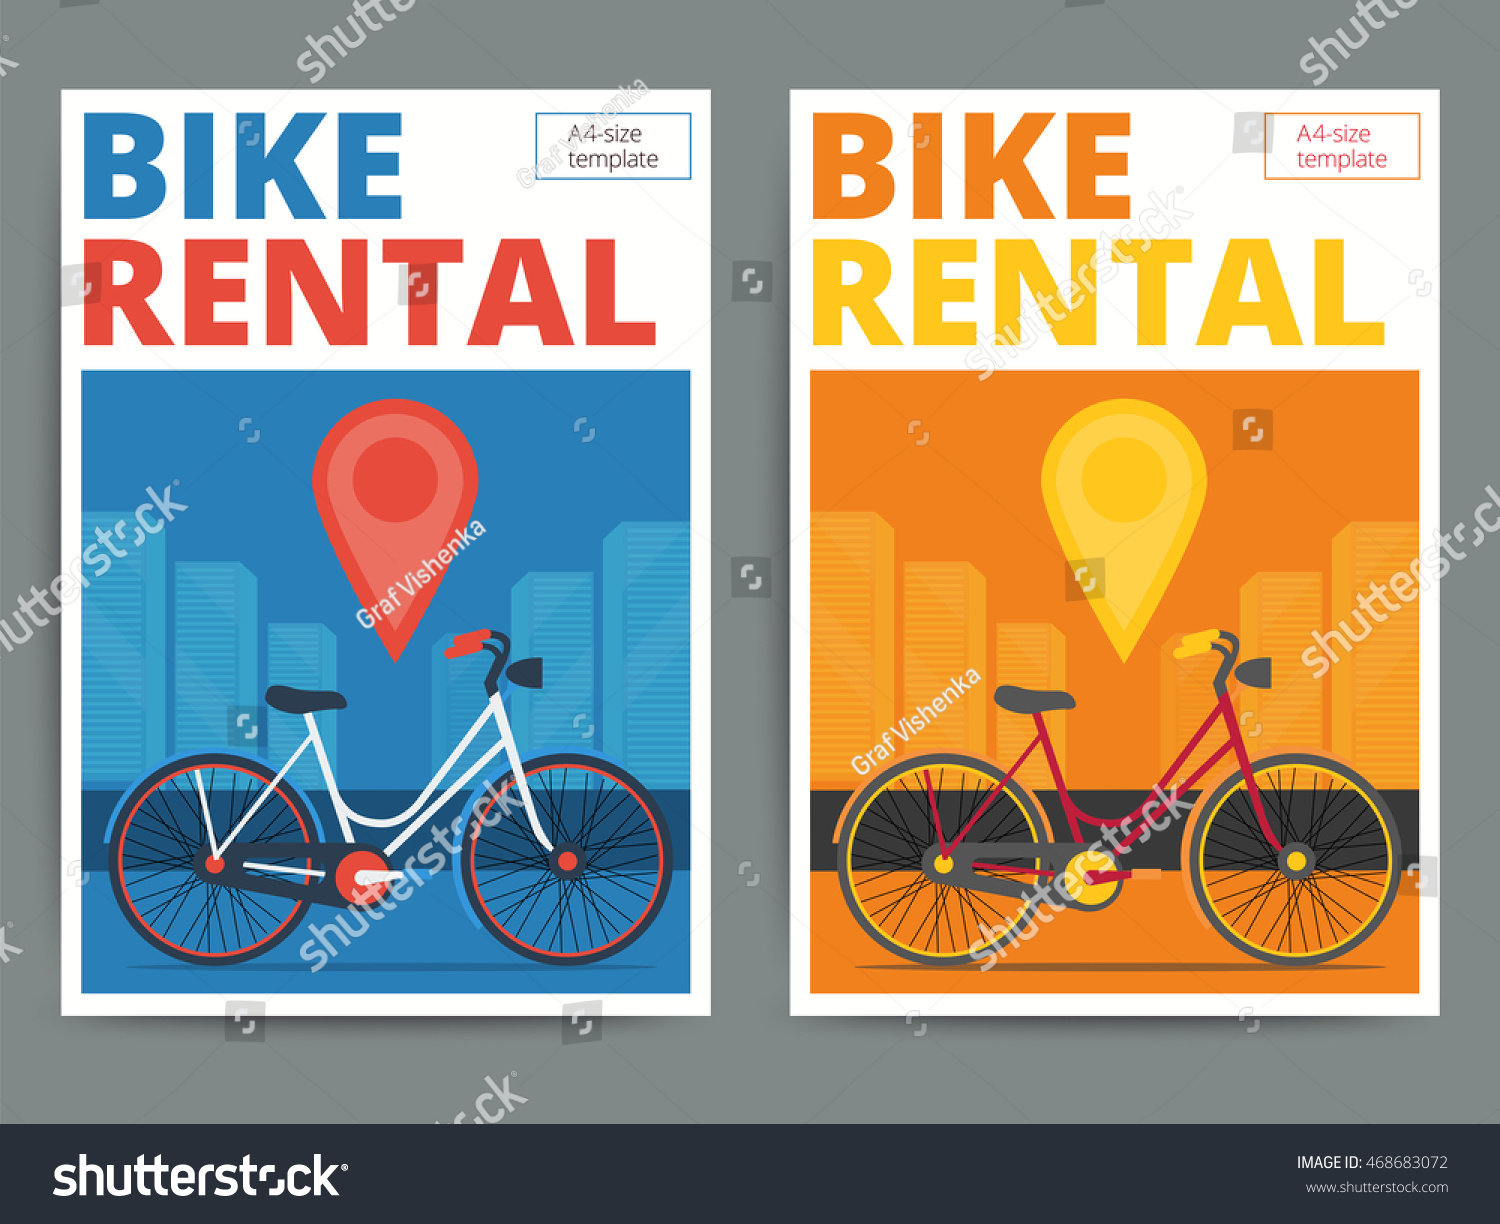 Poster design service - Trendy Bicycle Rental Service Poster Design Modern Vector Bike Hire Advertisement Flyer In A4 Size